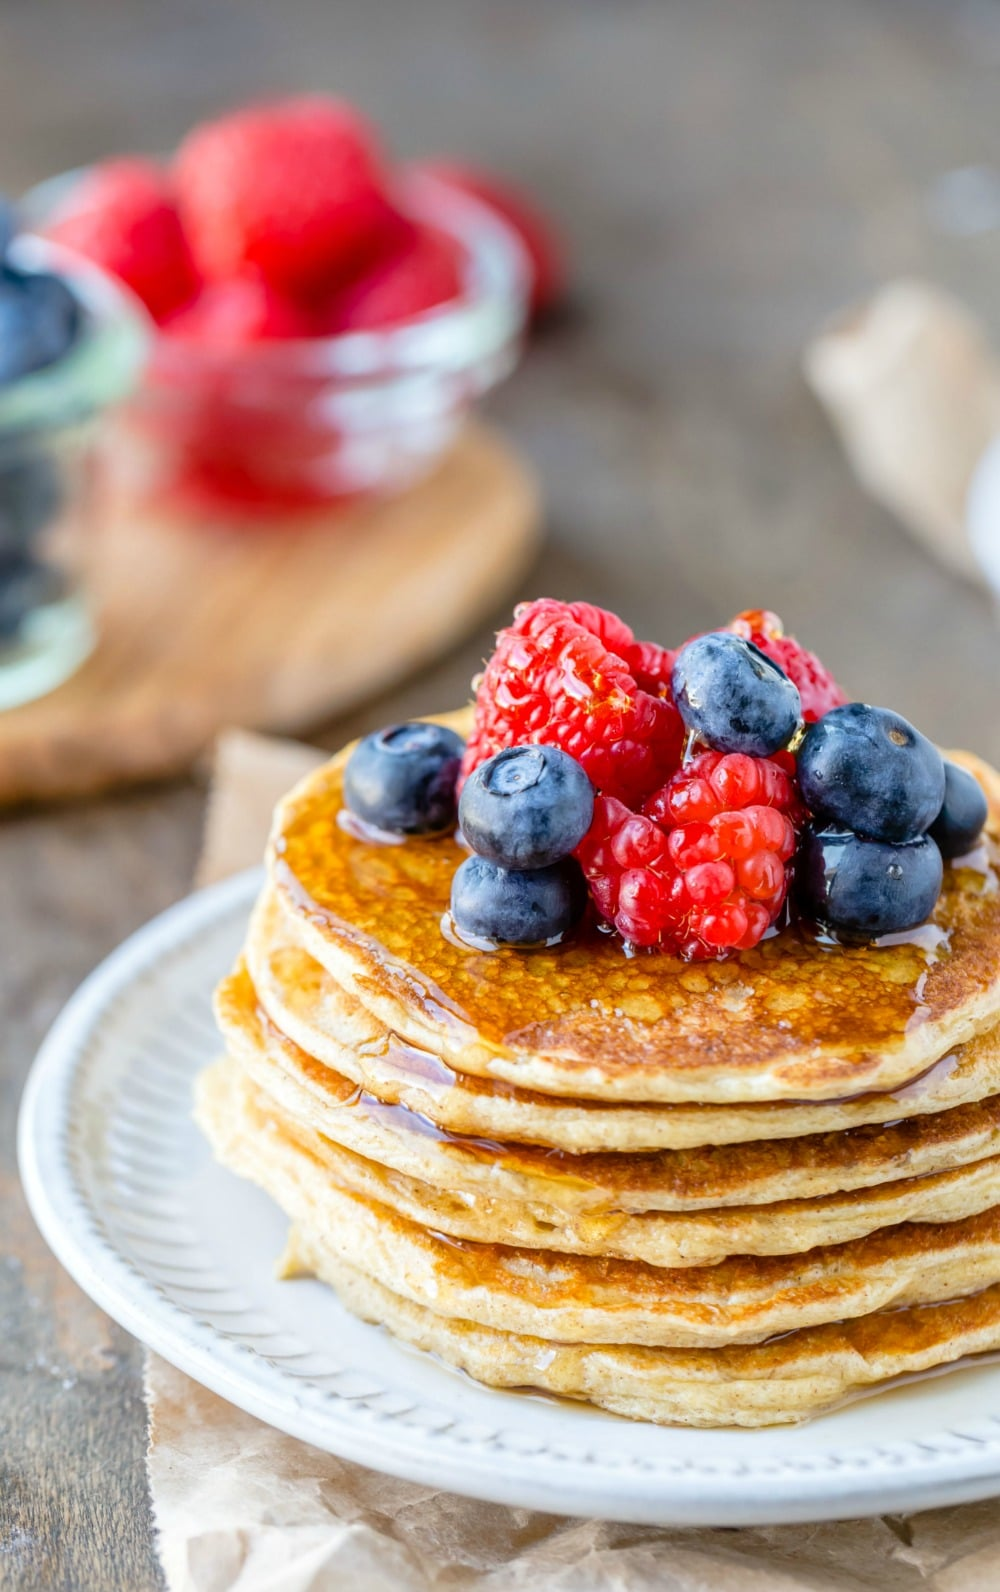 Berries and syrup on stack of cottage cheese pancakes